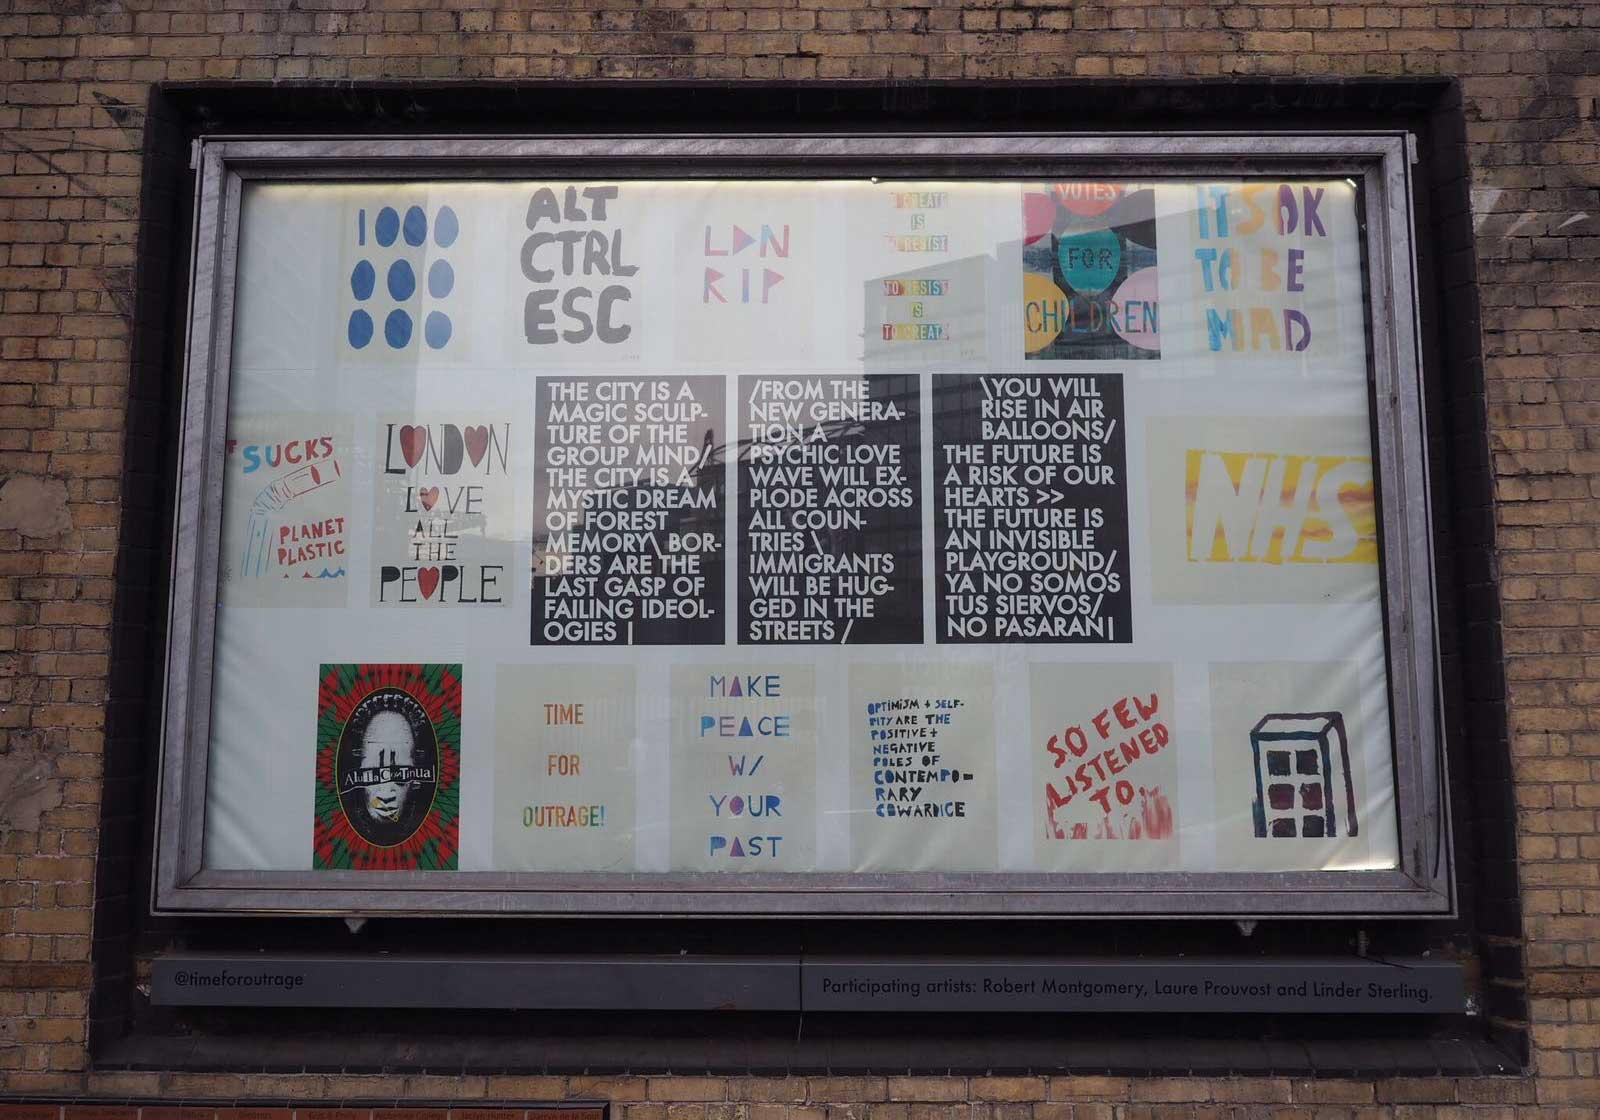 A mixed billboard with Robert Montgomery, John Isaacs and Kendell Geers by @Neel Creates